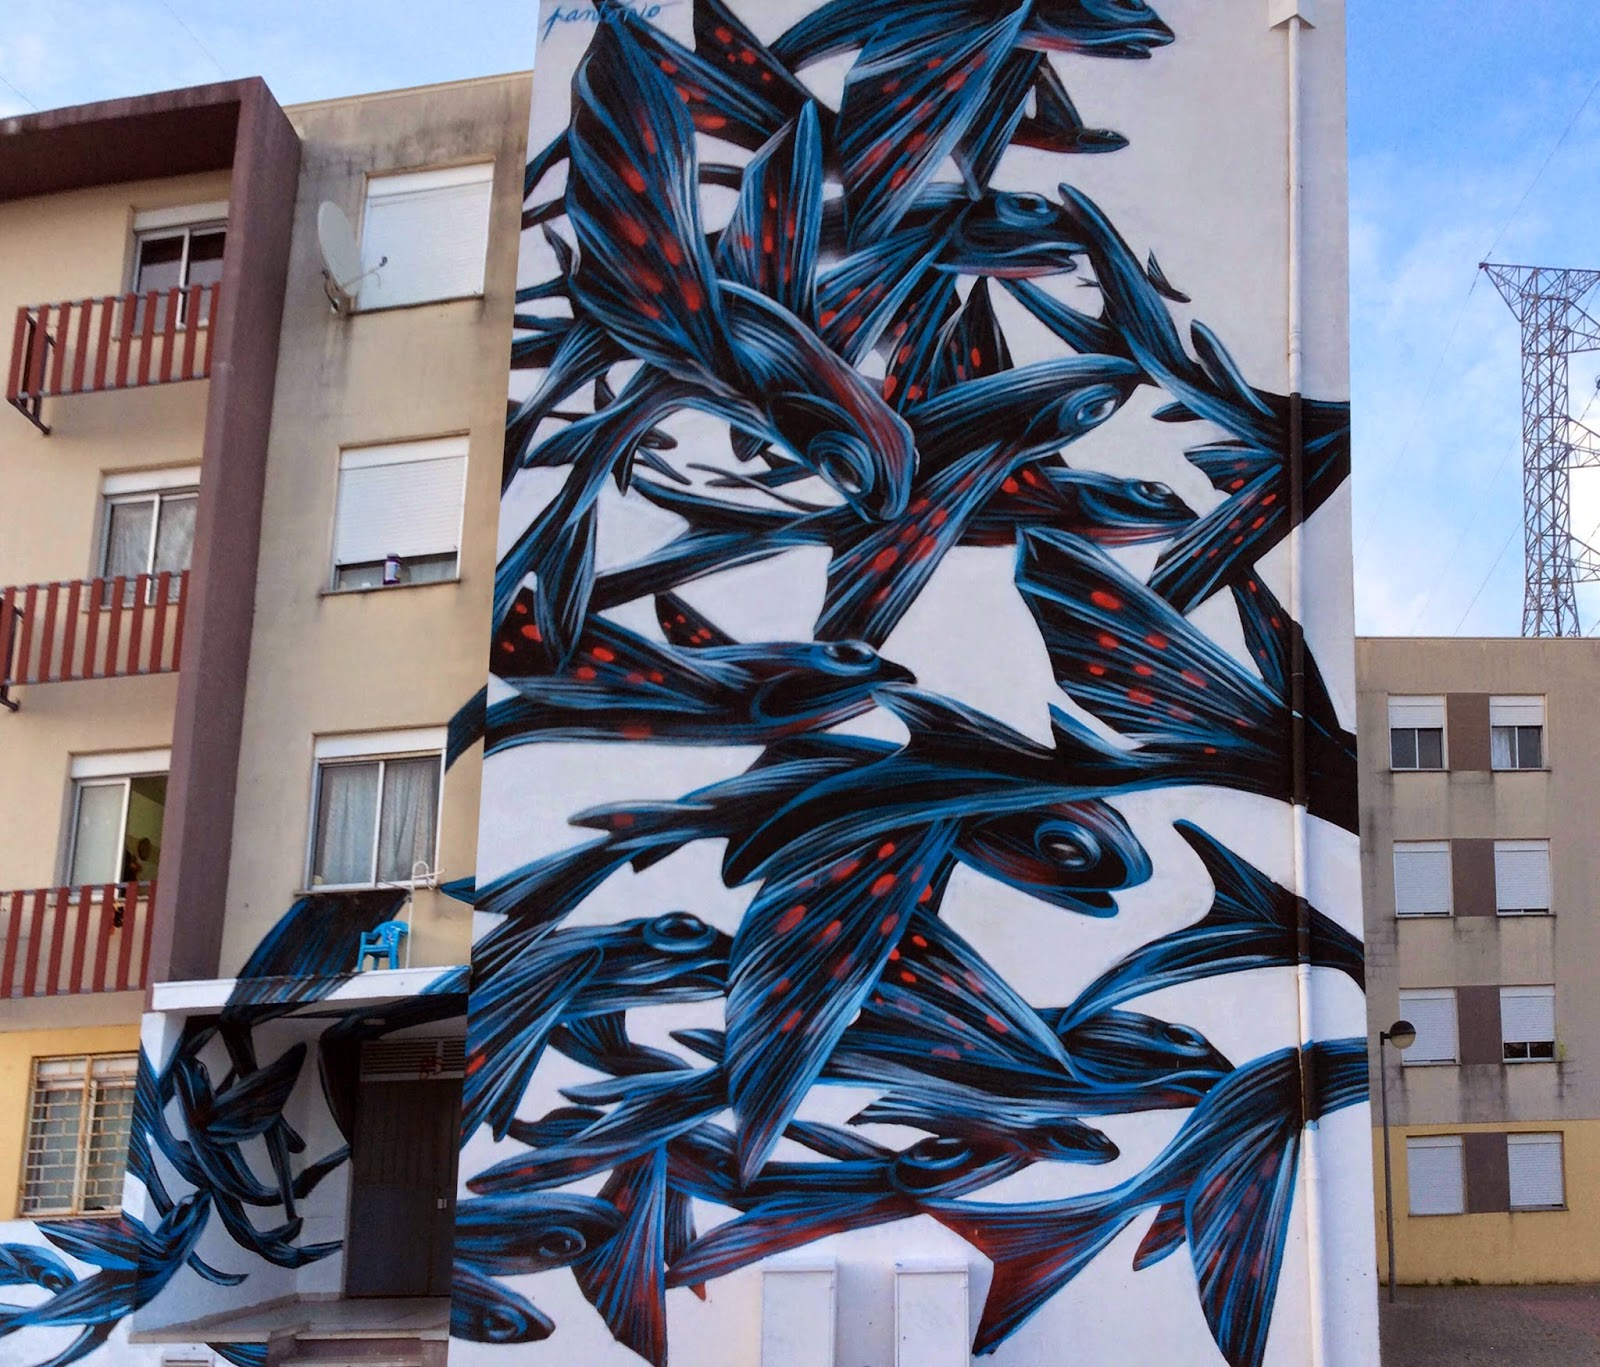 Pantonio recently stopped by the city of Loures in Portugal where he had the opportunity to work on a new piece within the popular neighberhood of Quinta do Mocho.